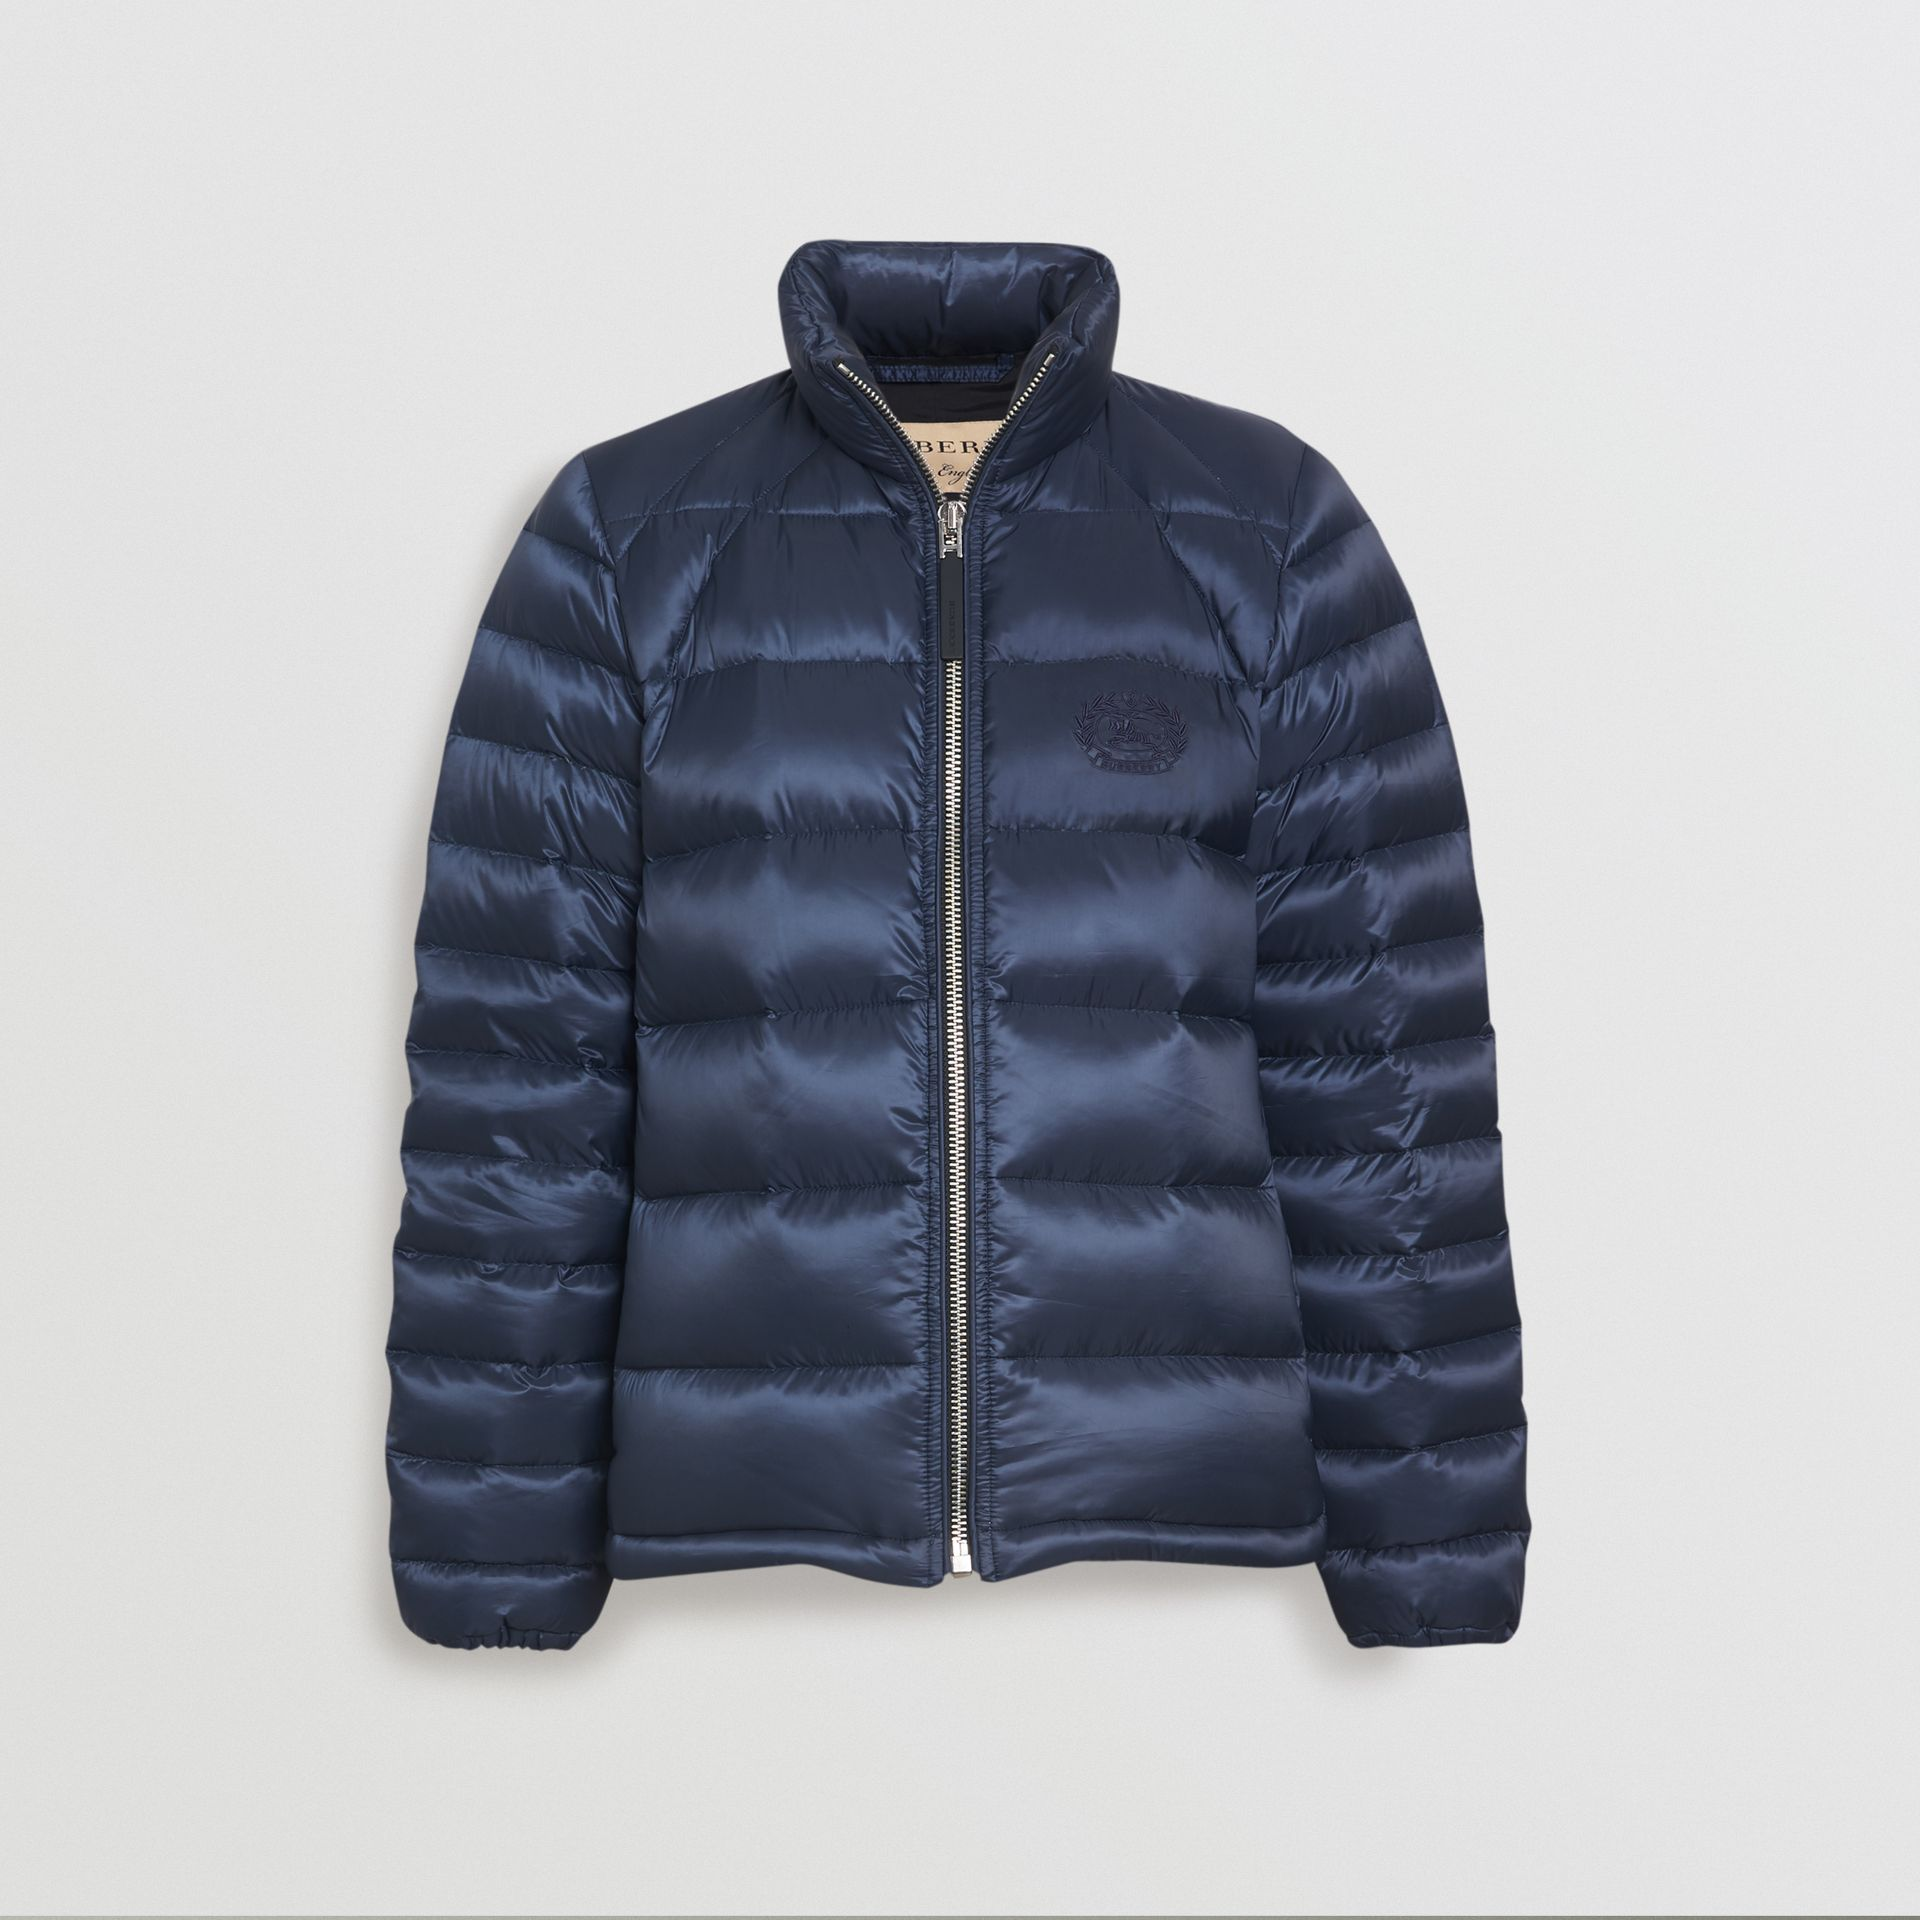 Down-filled Puffer Jacket in Navy - Women | Burberry - gallery image 2